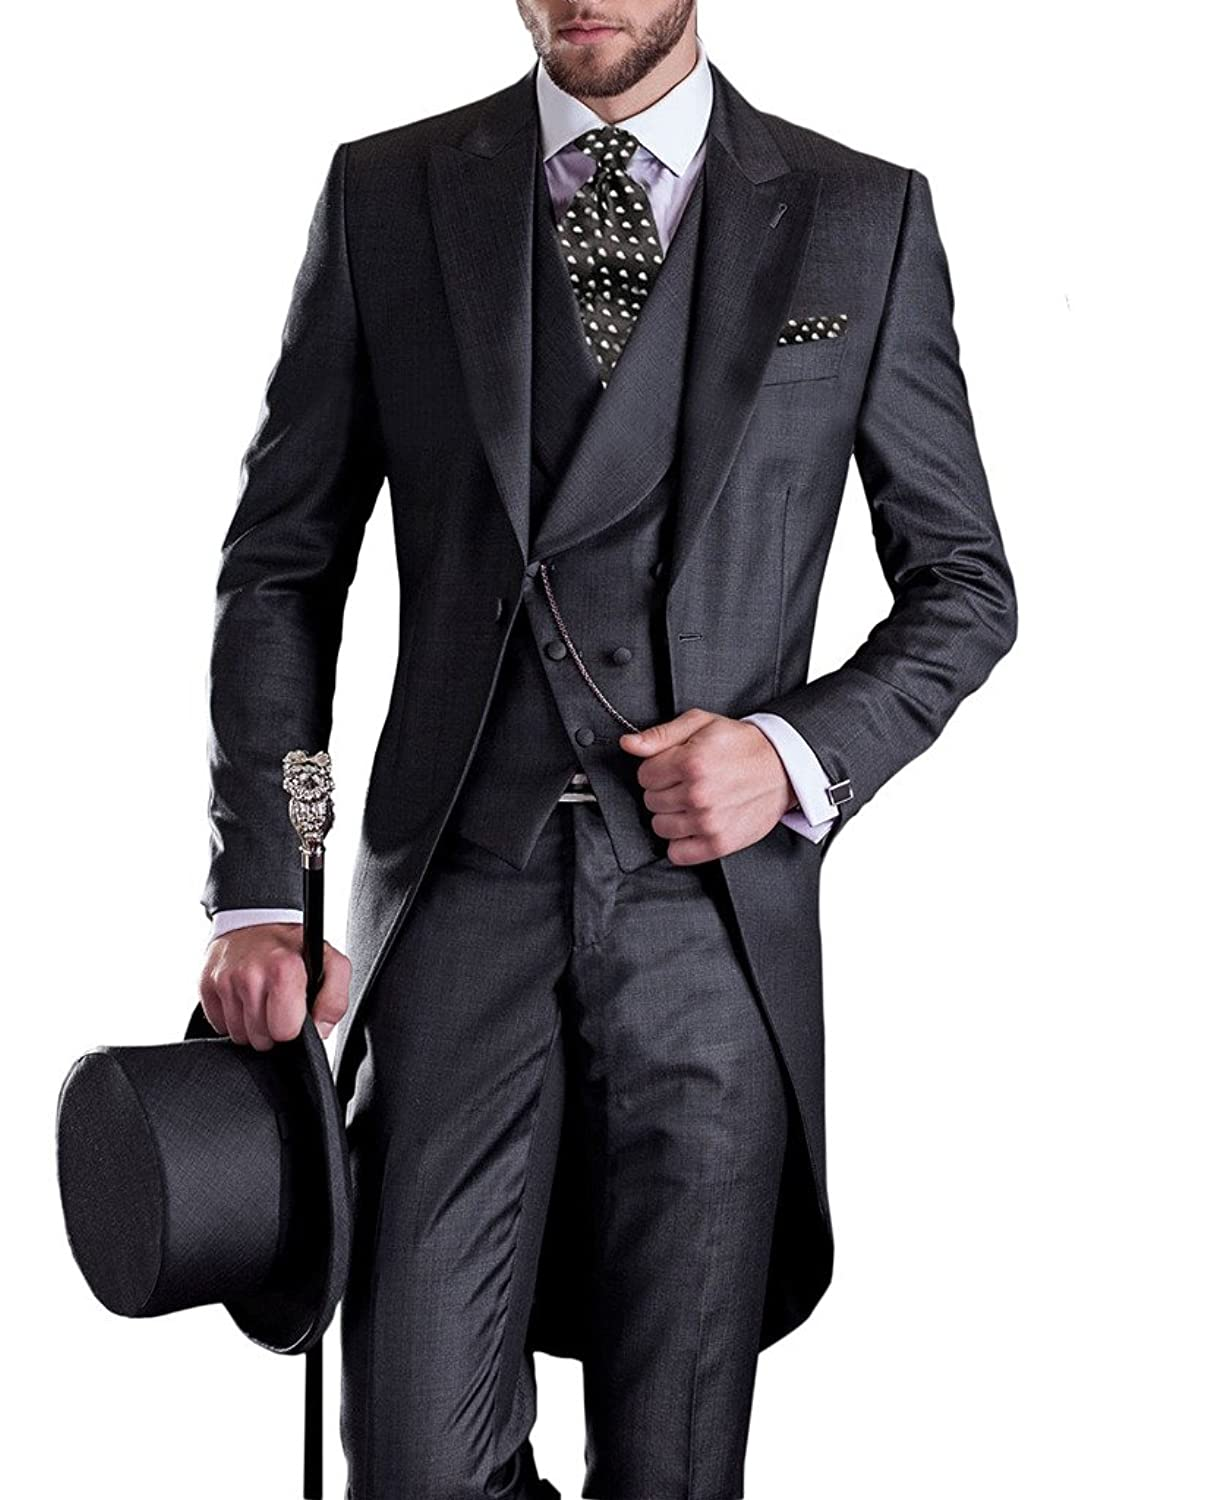 1920s Fashion for Men Mens Tail Tuxedo 3pc Tailcoat suit in Gray Suit Jacket Vest Suit Pants GEORGE BRIDE Premium $79.00 AT vintagedancer.com